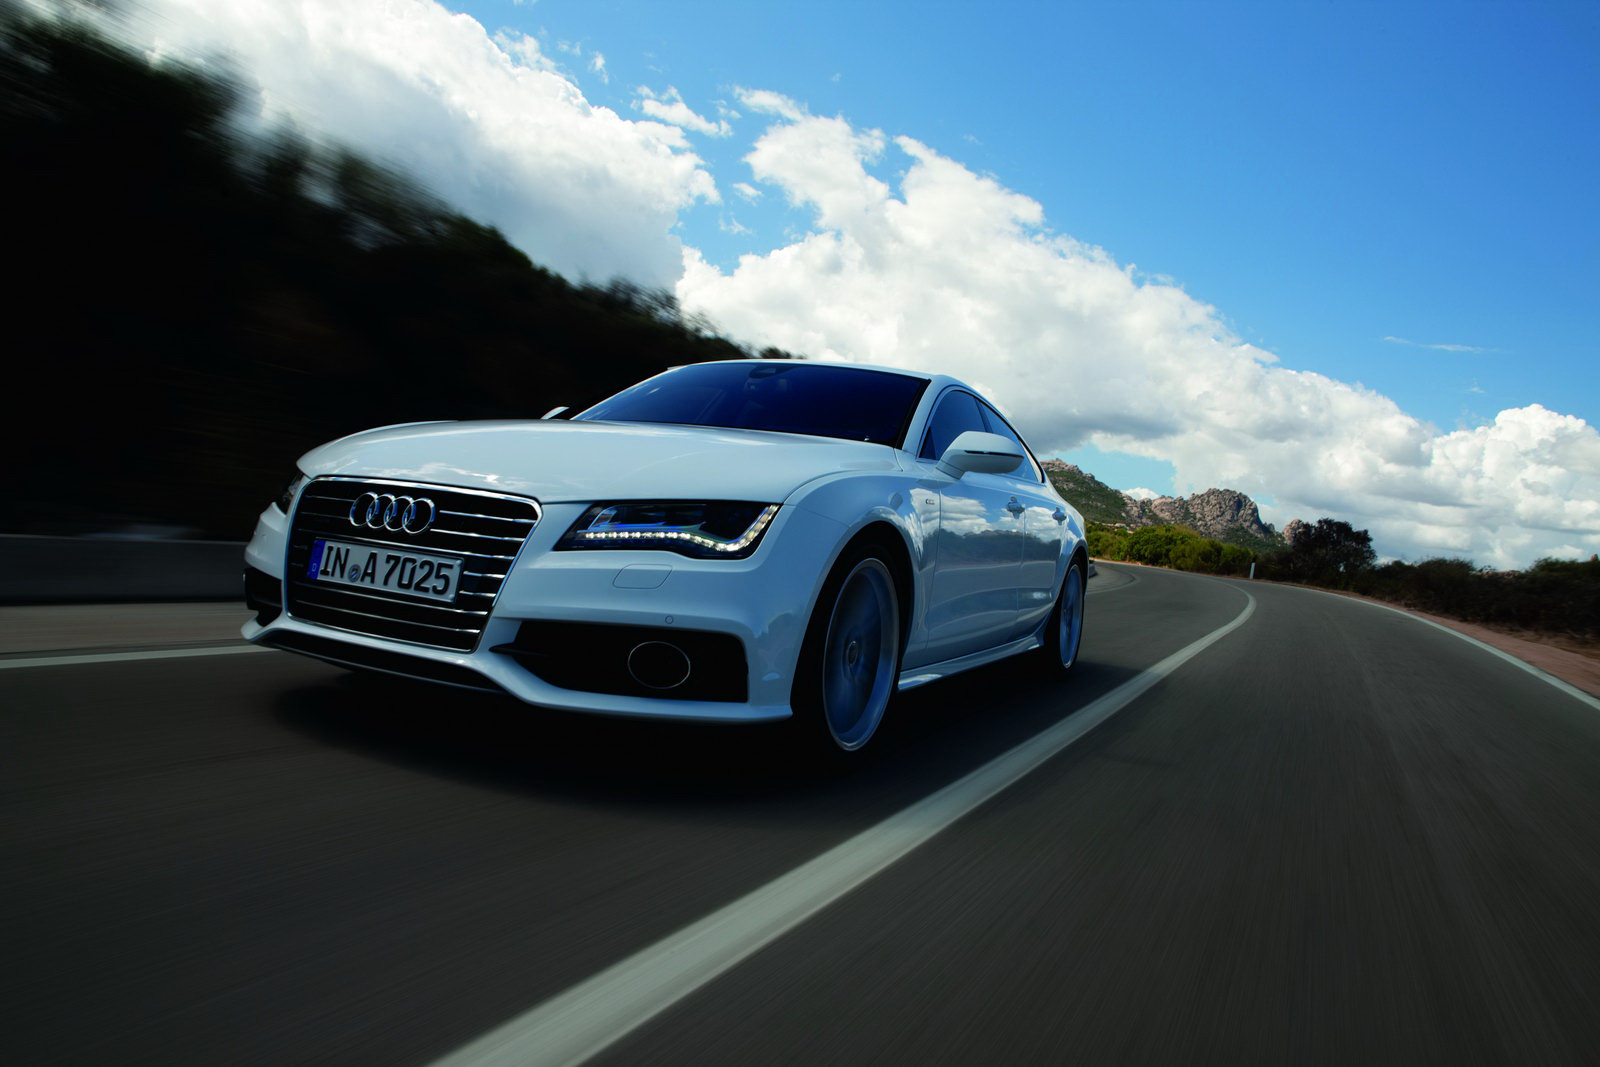 2012 Audi A7 Sportback 42 The Exciting 2012 Audi A7 Sportback